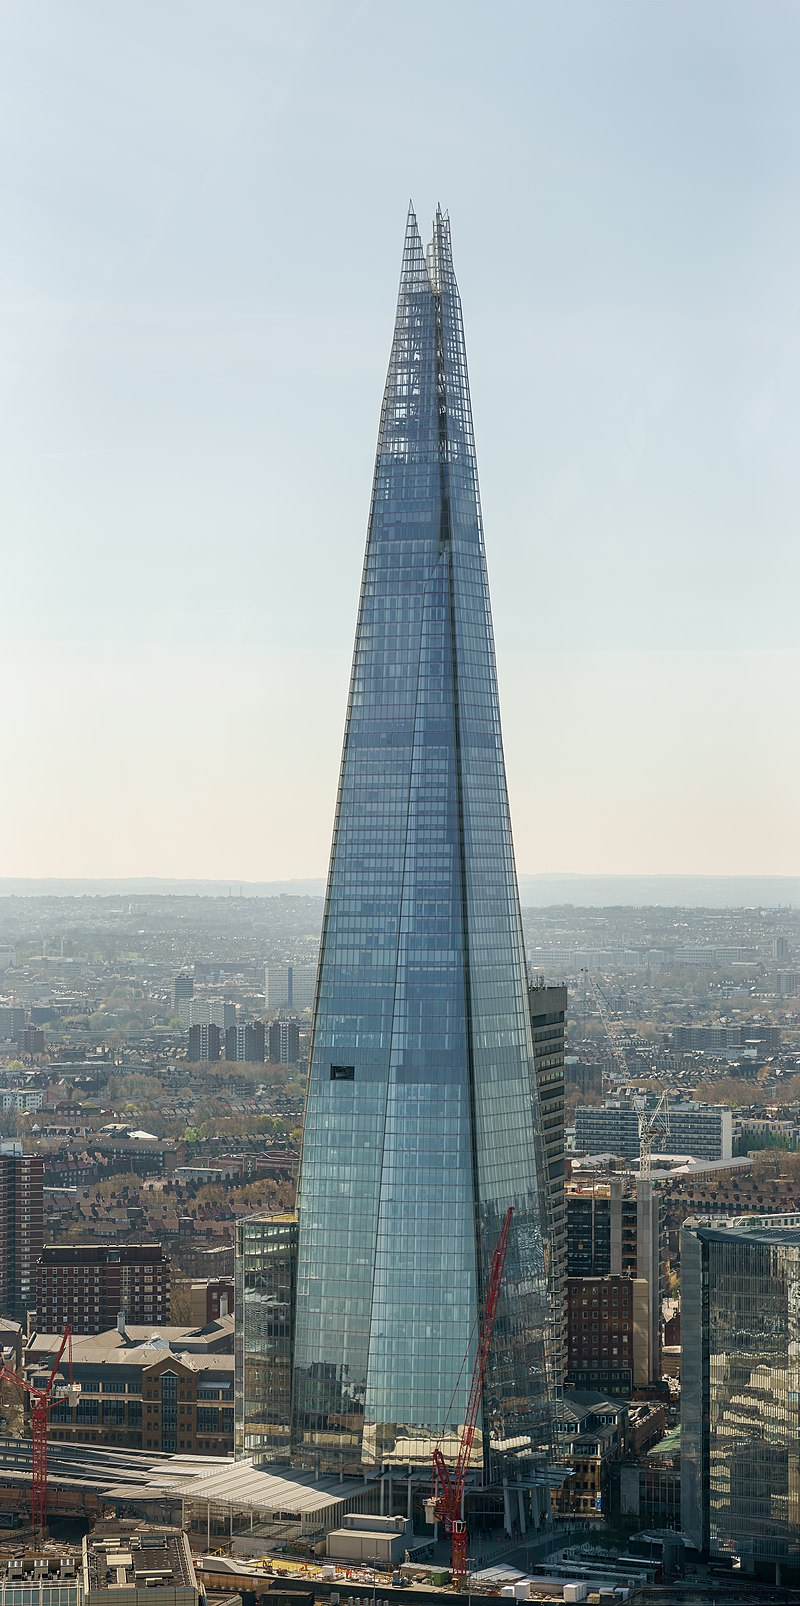 senibina renzo piano, The Shard, London